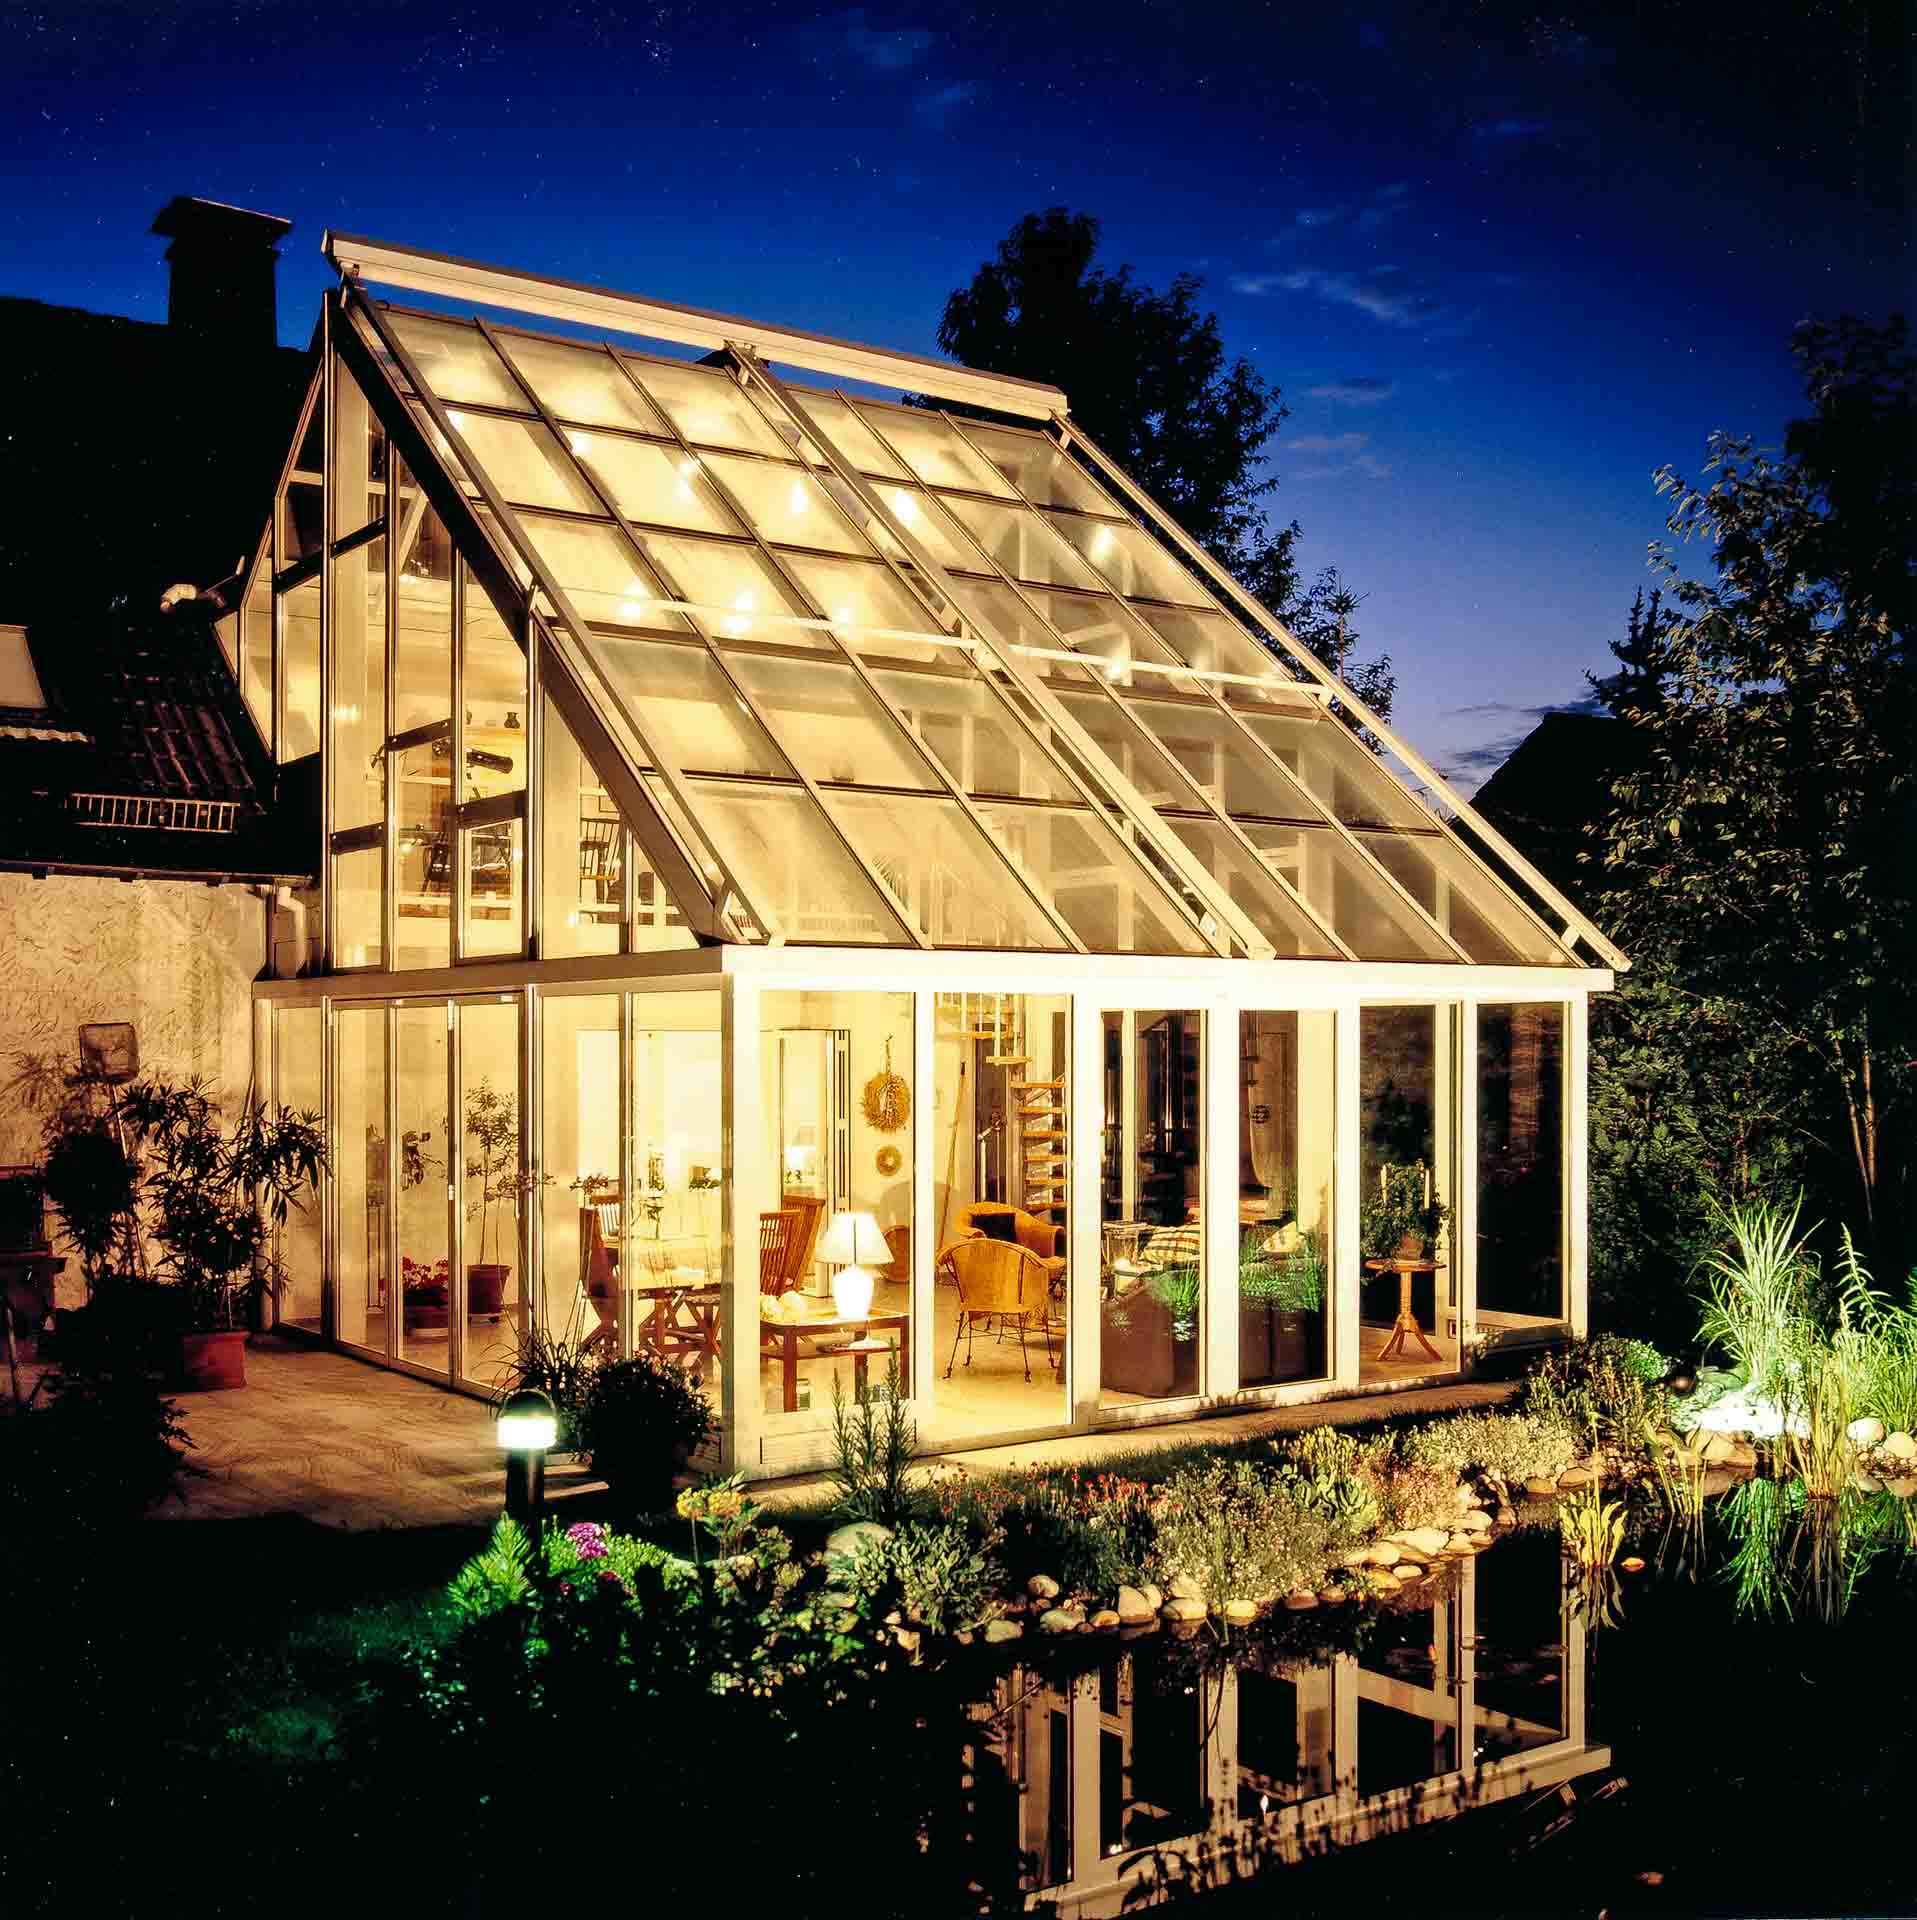 2-storey conservatory in Gummersbach (object 633). Enjoy evening atmosphere in winterly atmosphere with garden connection.